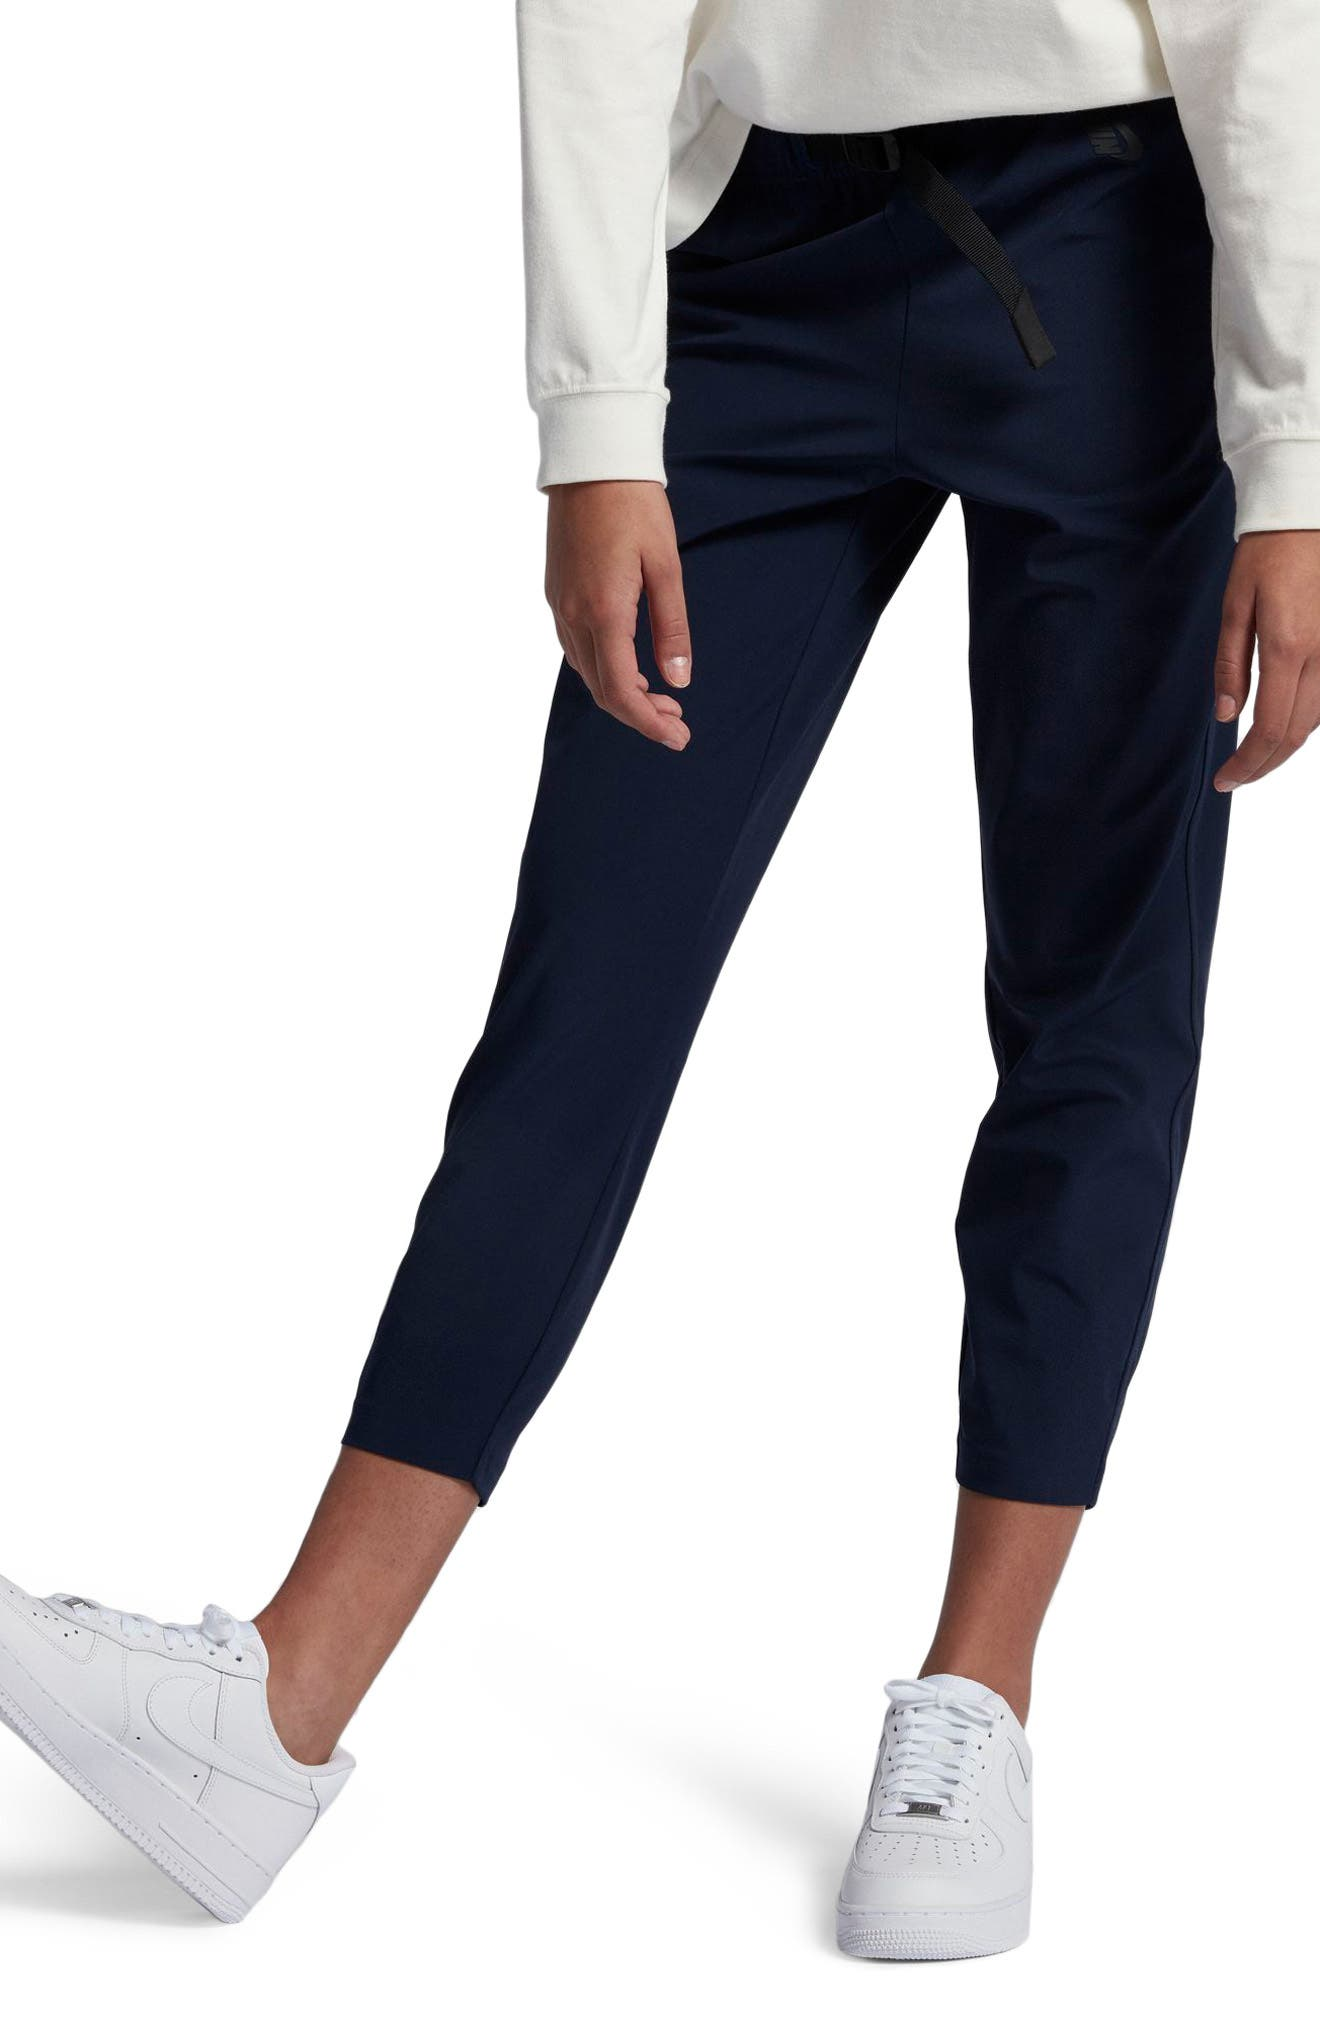 Nike NikeLab Essentials Women's Stretch Woven Pants